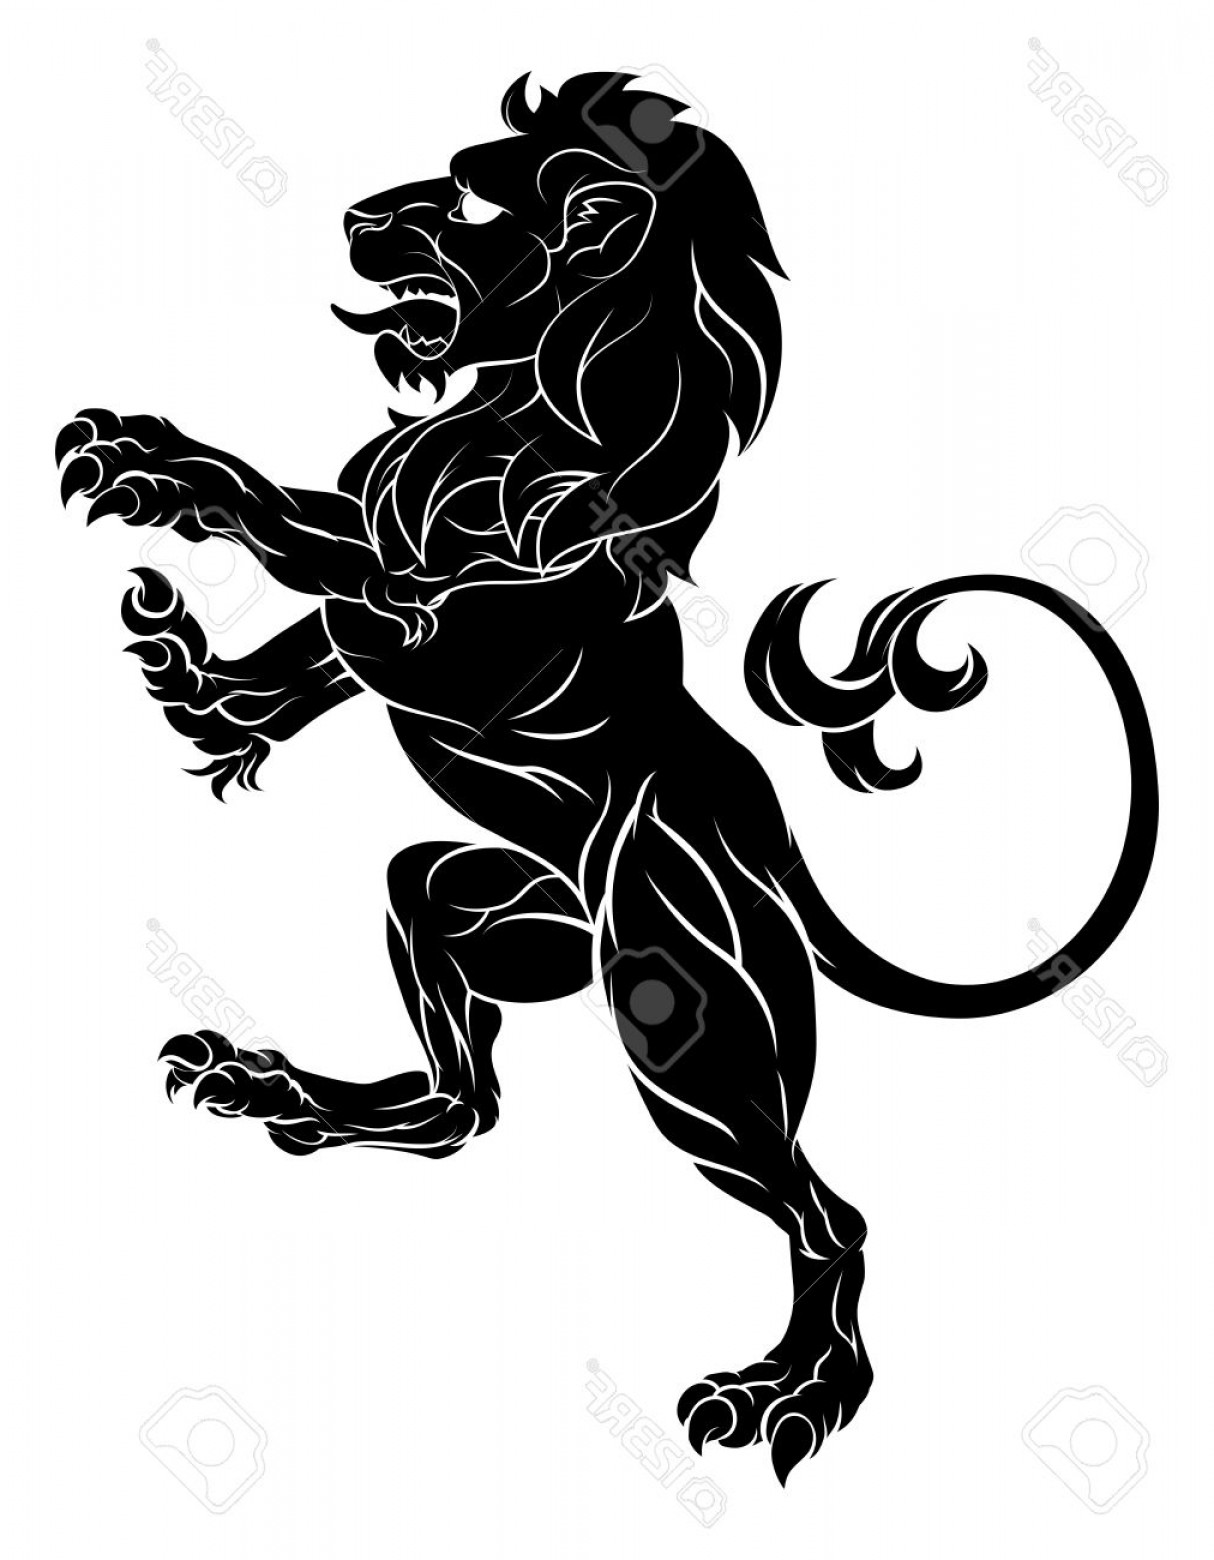 Standing Lions Crest Vector: Photostock Vector Original Illustration Of A Rampant Lion Such As From A Crest Or Coat Of Arms Emblem Standing On Back